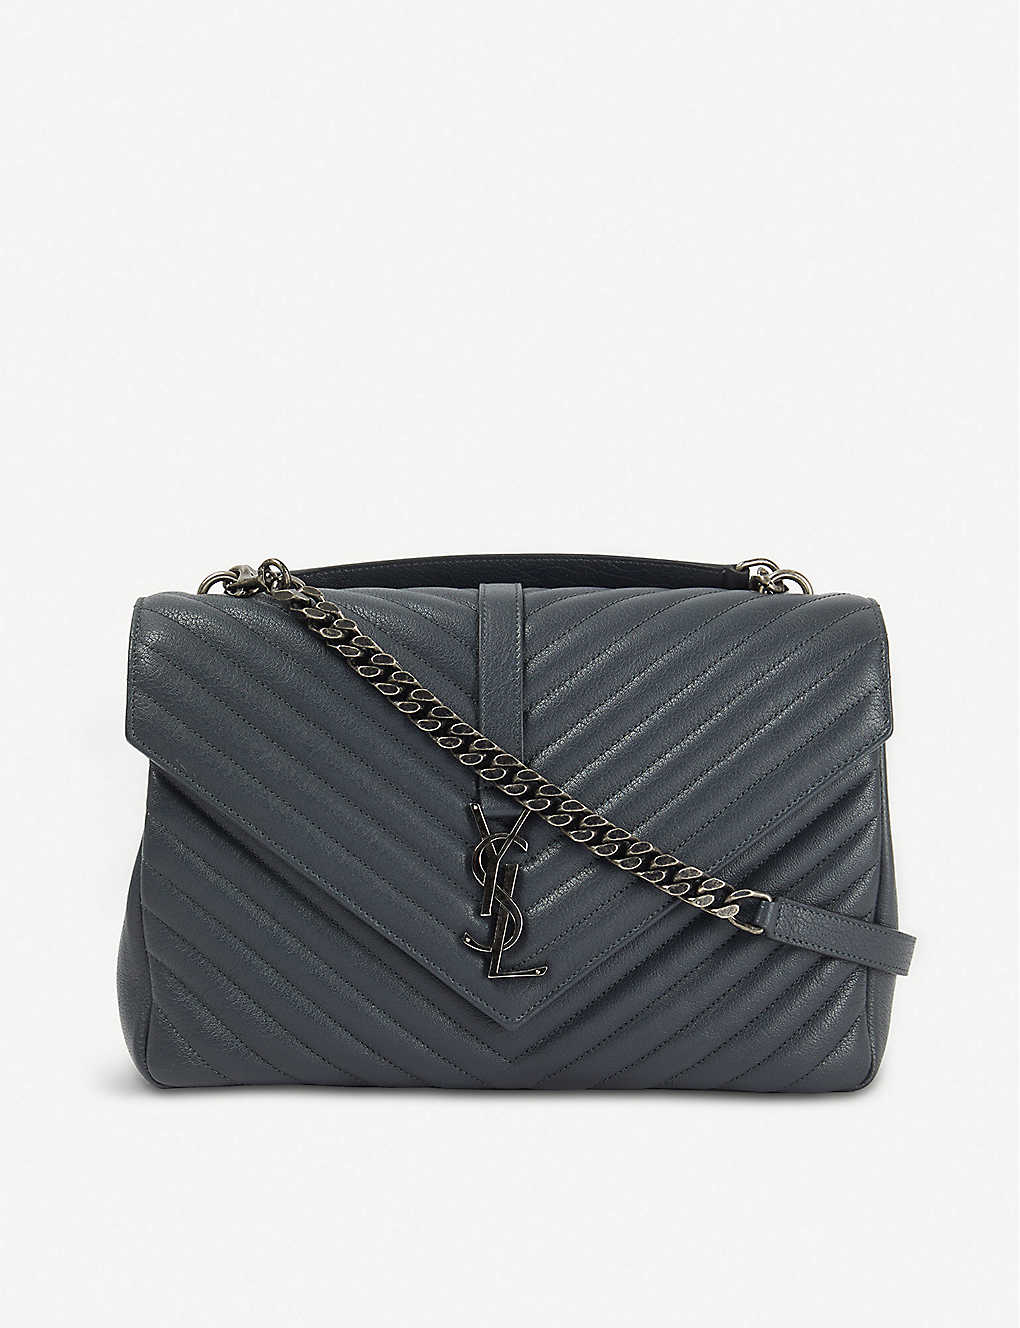 SAINT LAURENT: Collège monogram quilted leather shoulder bag